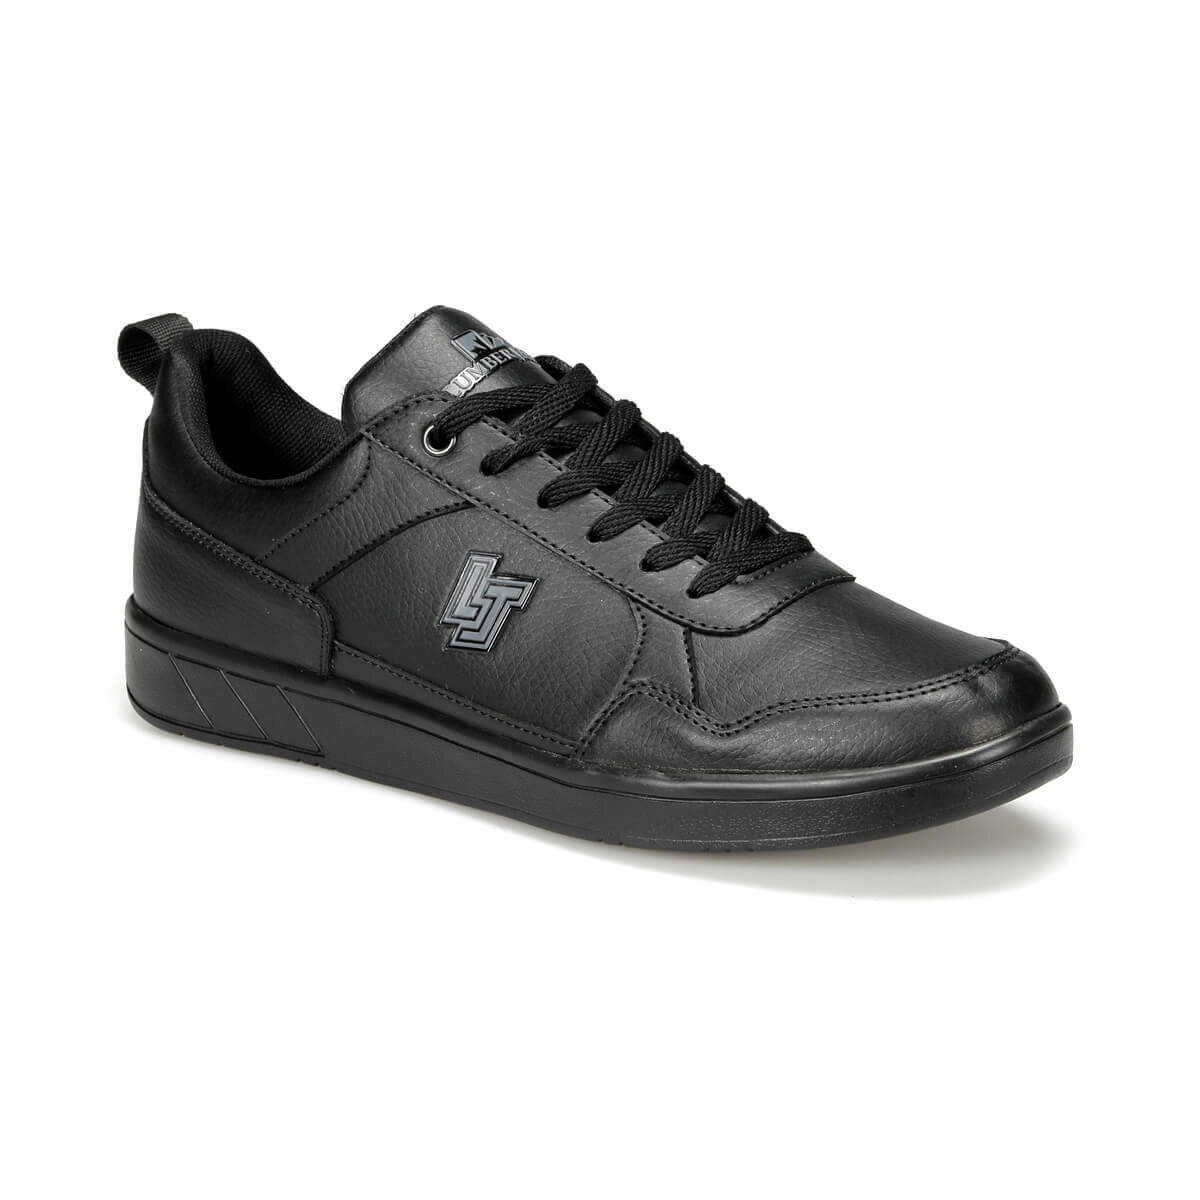 FLO ANTONY 9PR Black Men 'S Sneaker Shoes LUMBERJACK